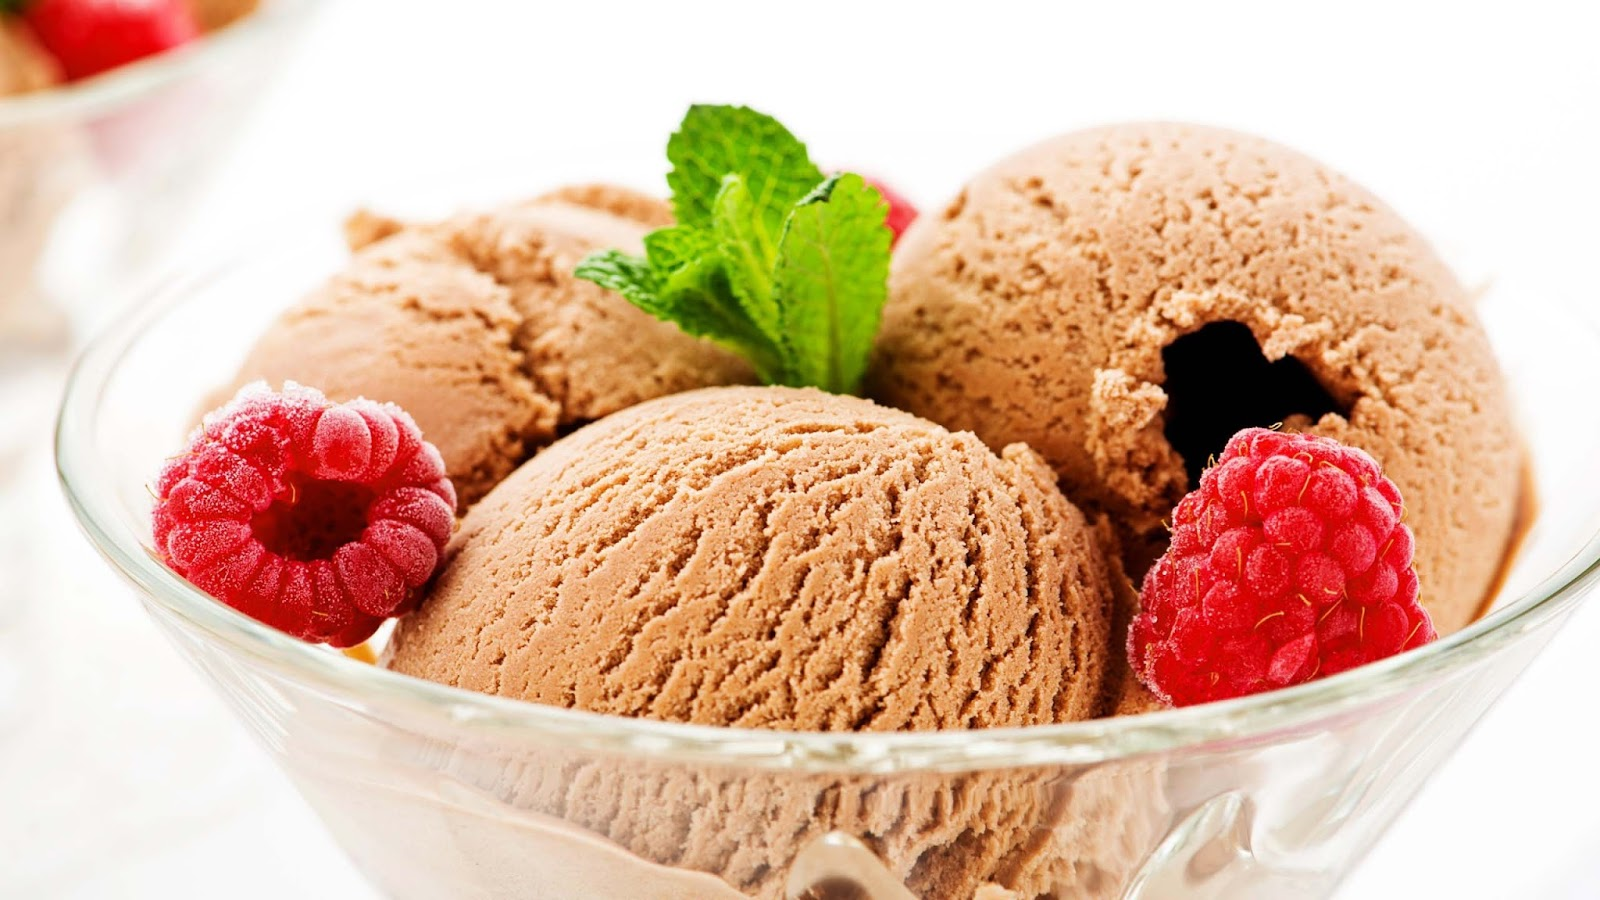 125 ICE CREAM HD WALLPAPERS IMAGES PHOTOS PICTURES AND ...